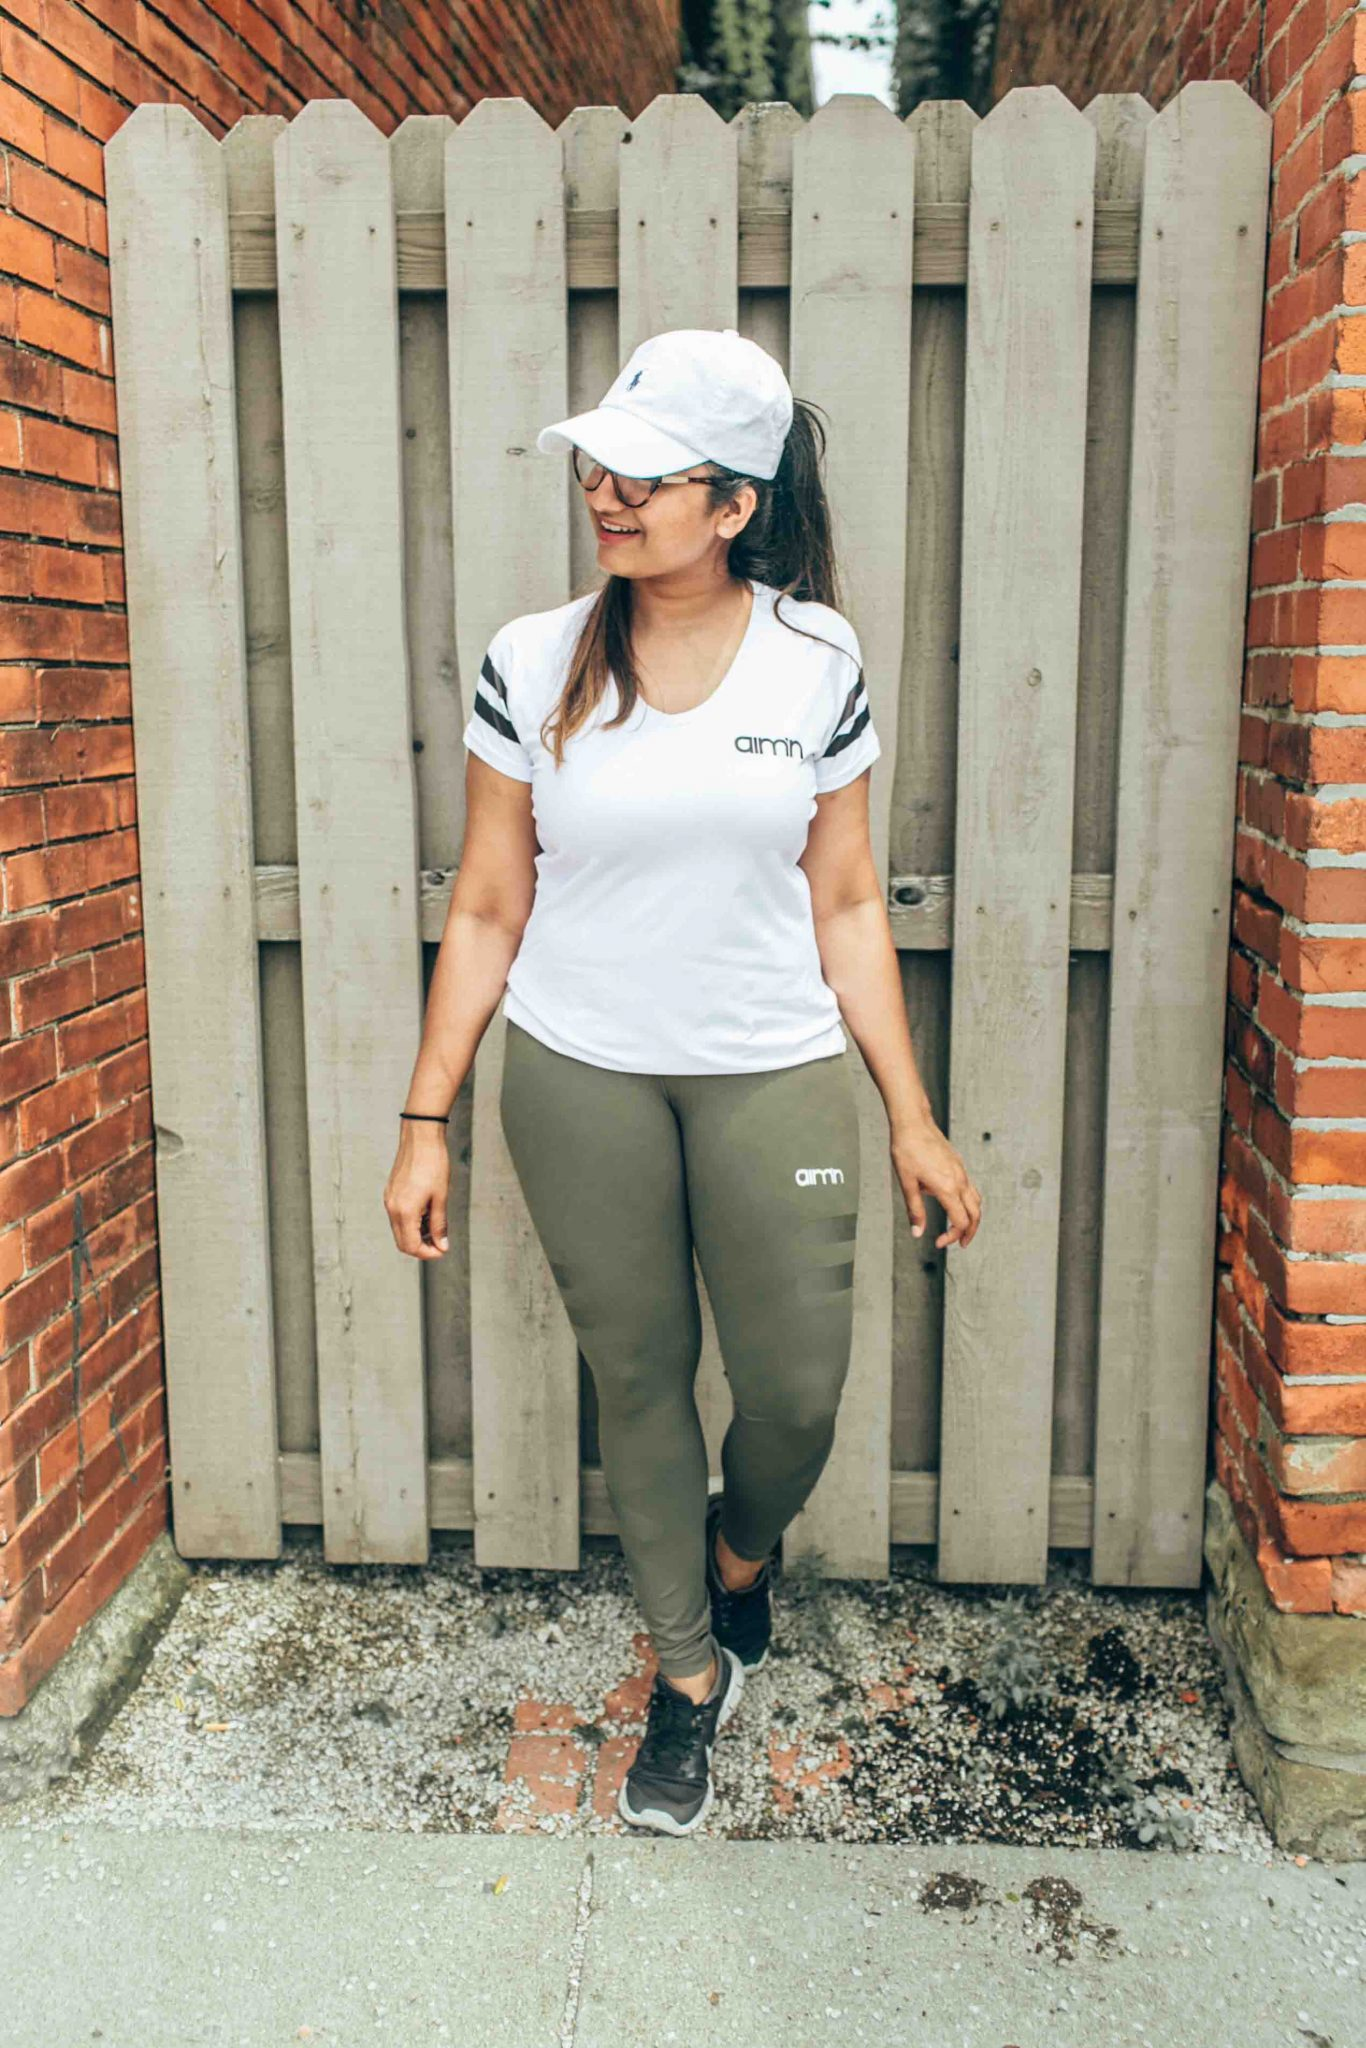 Wearing Aimn Sportswear WHITE TRIBE T-SHIRT - Aim'n Sportswear 20% off coupon featured by popular Ohio modest fashion blogger, Dreaming Loud